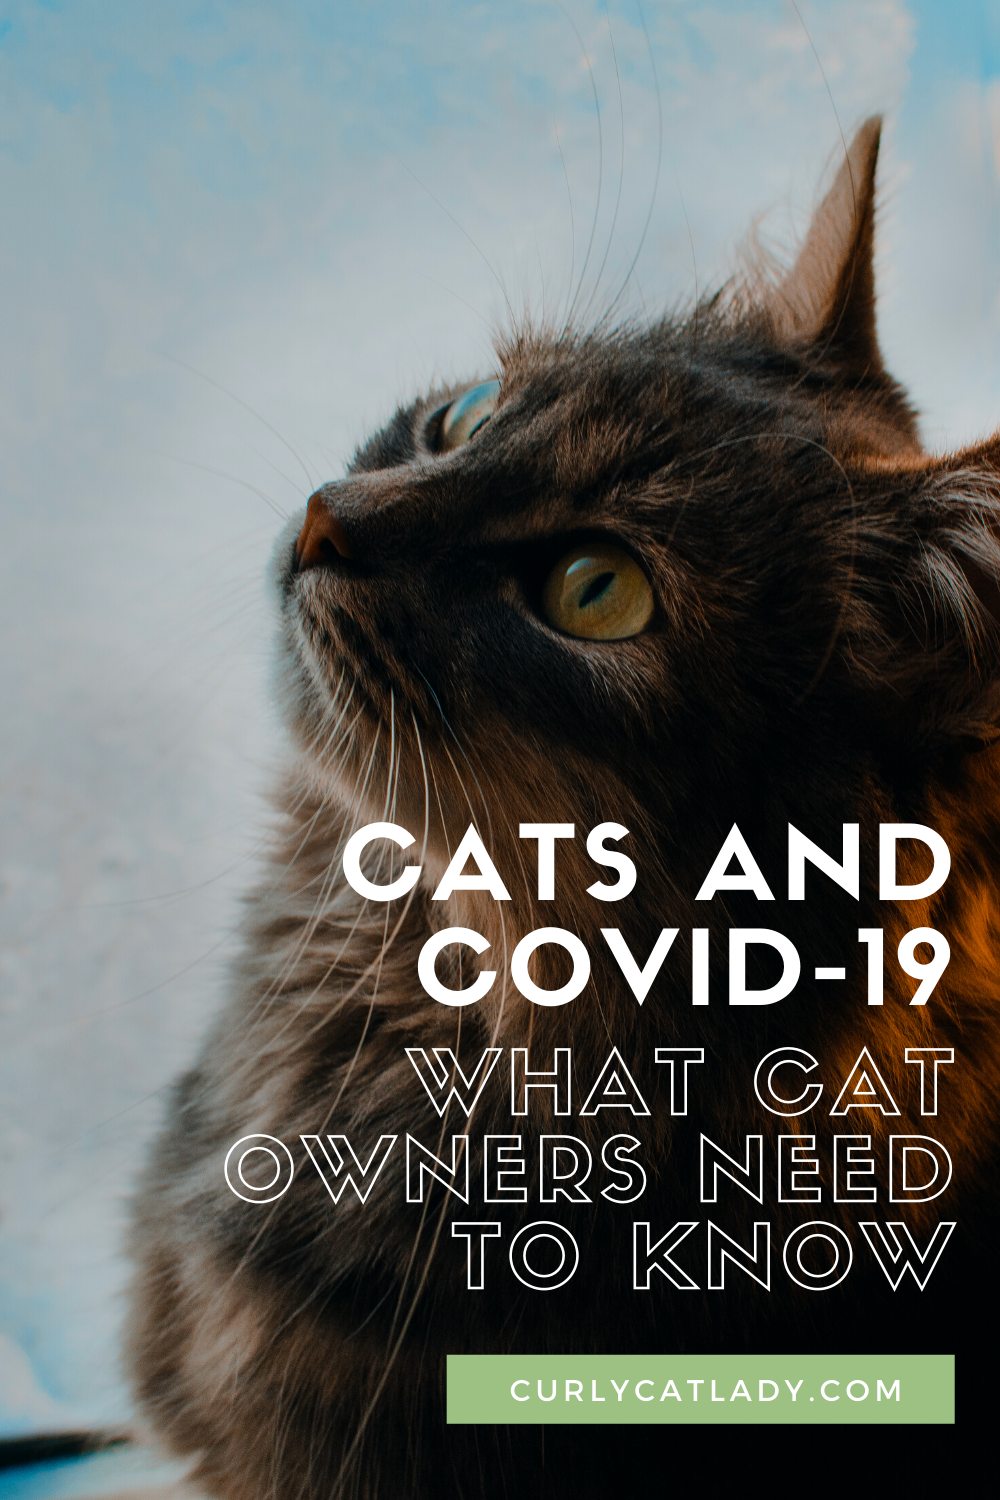 cats and covid-19: what cat owners need to know